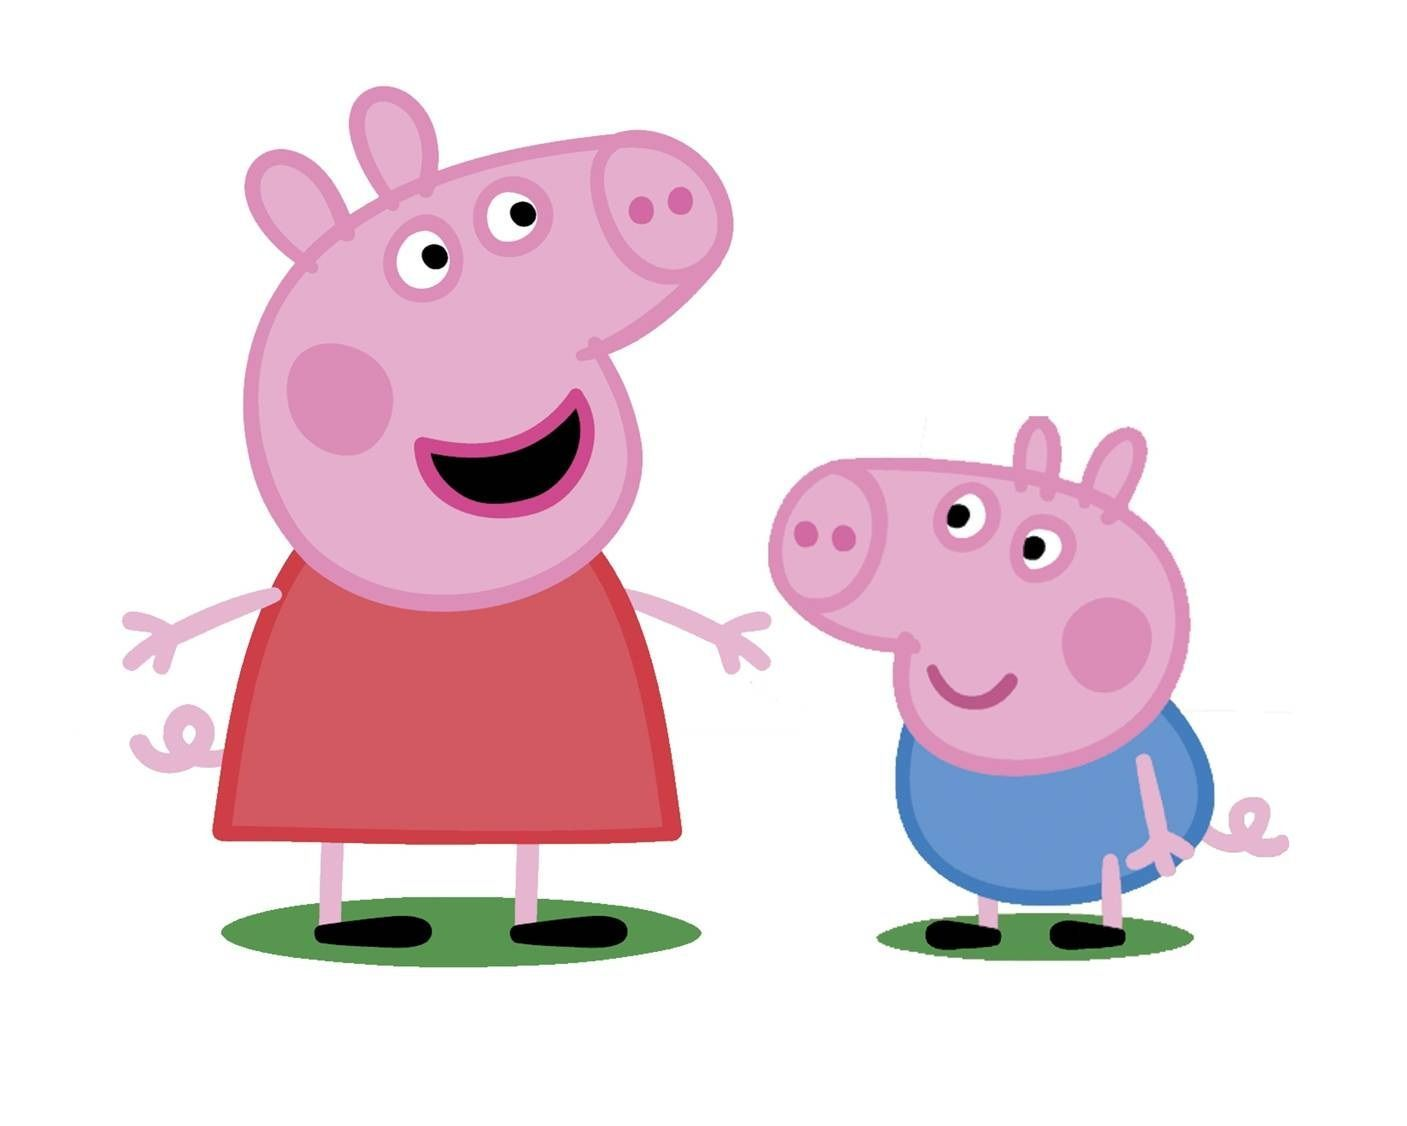 Buy Fine Decor Peppa Pig Official Childrens Kids Wallpaper Pink